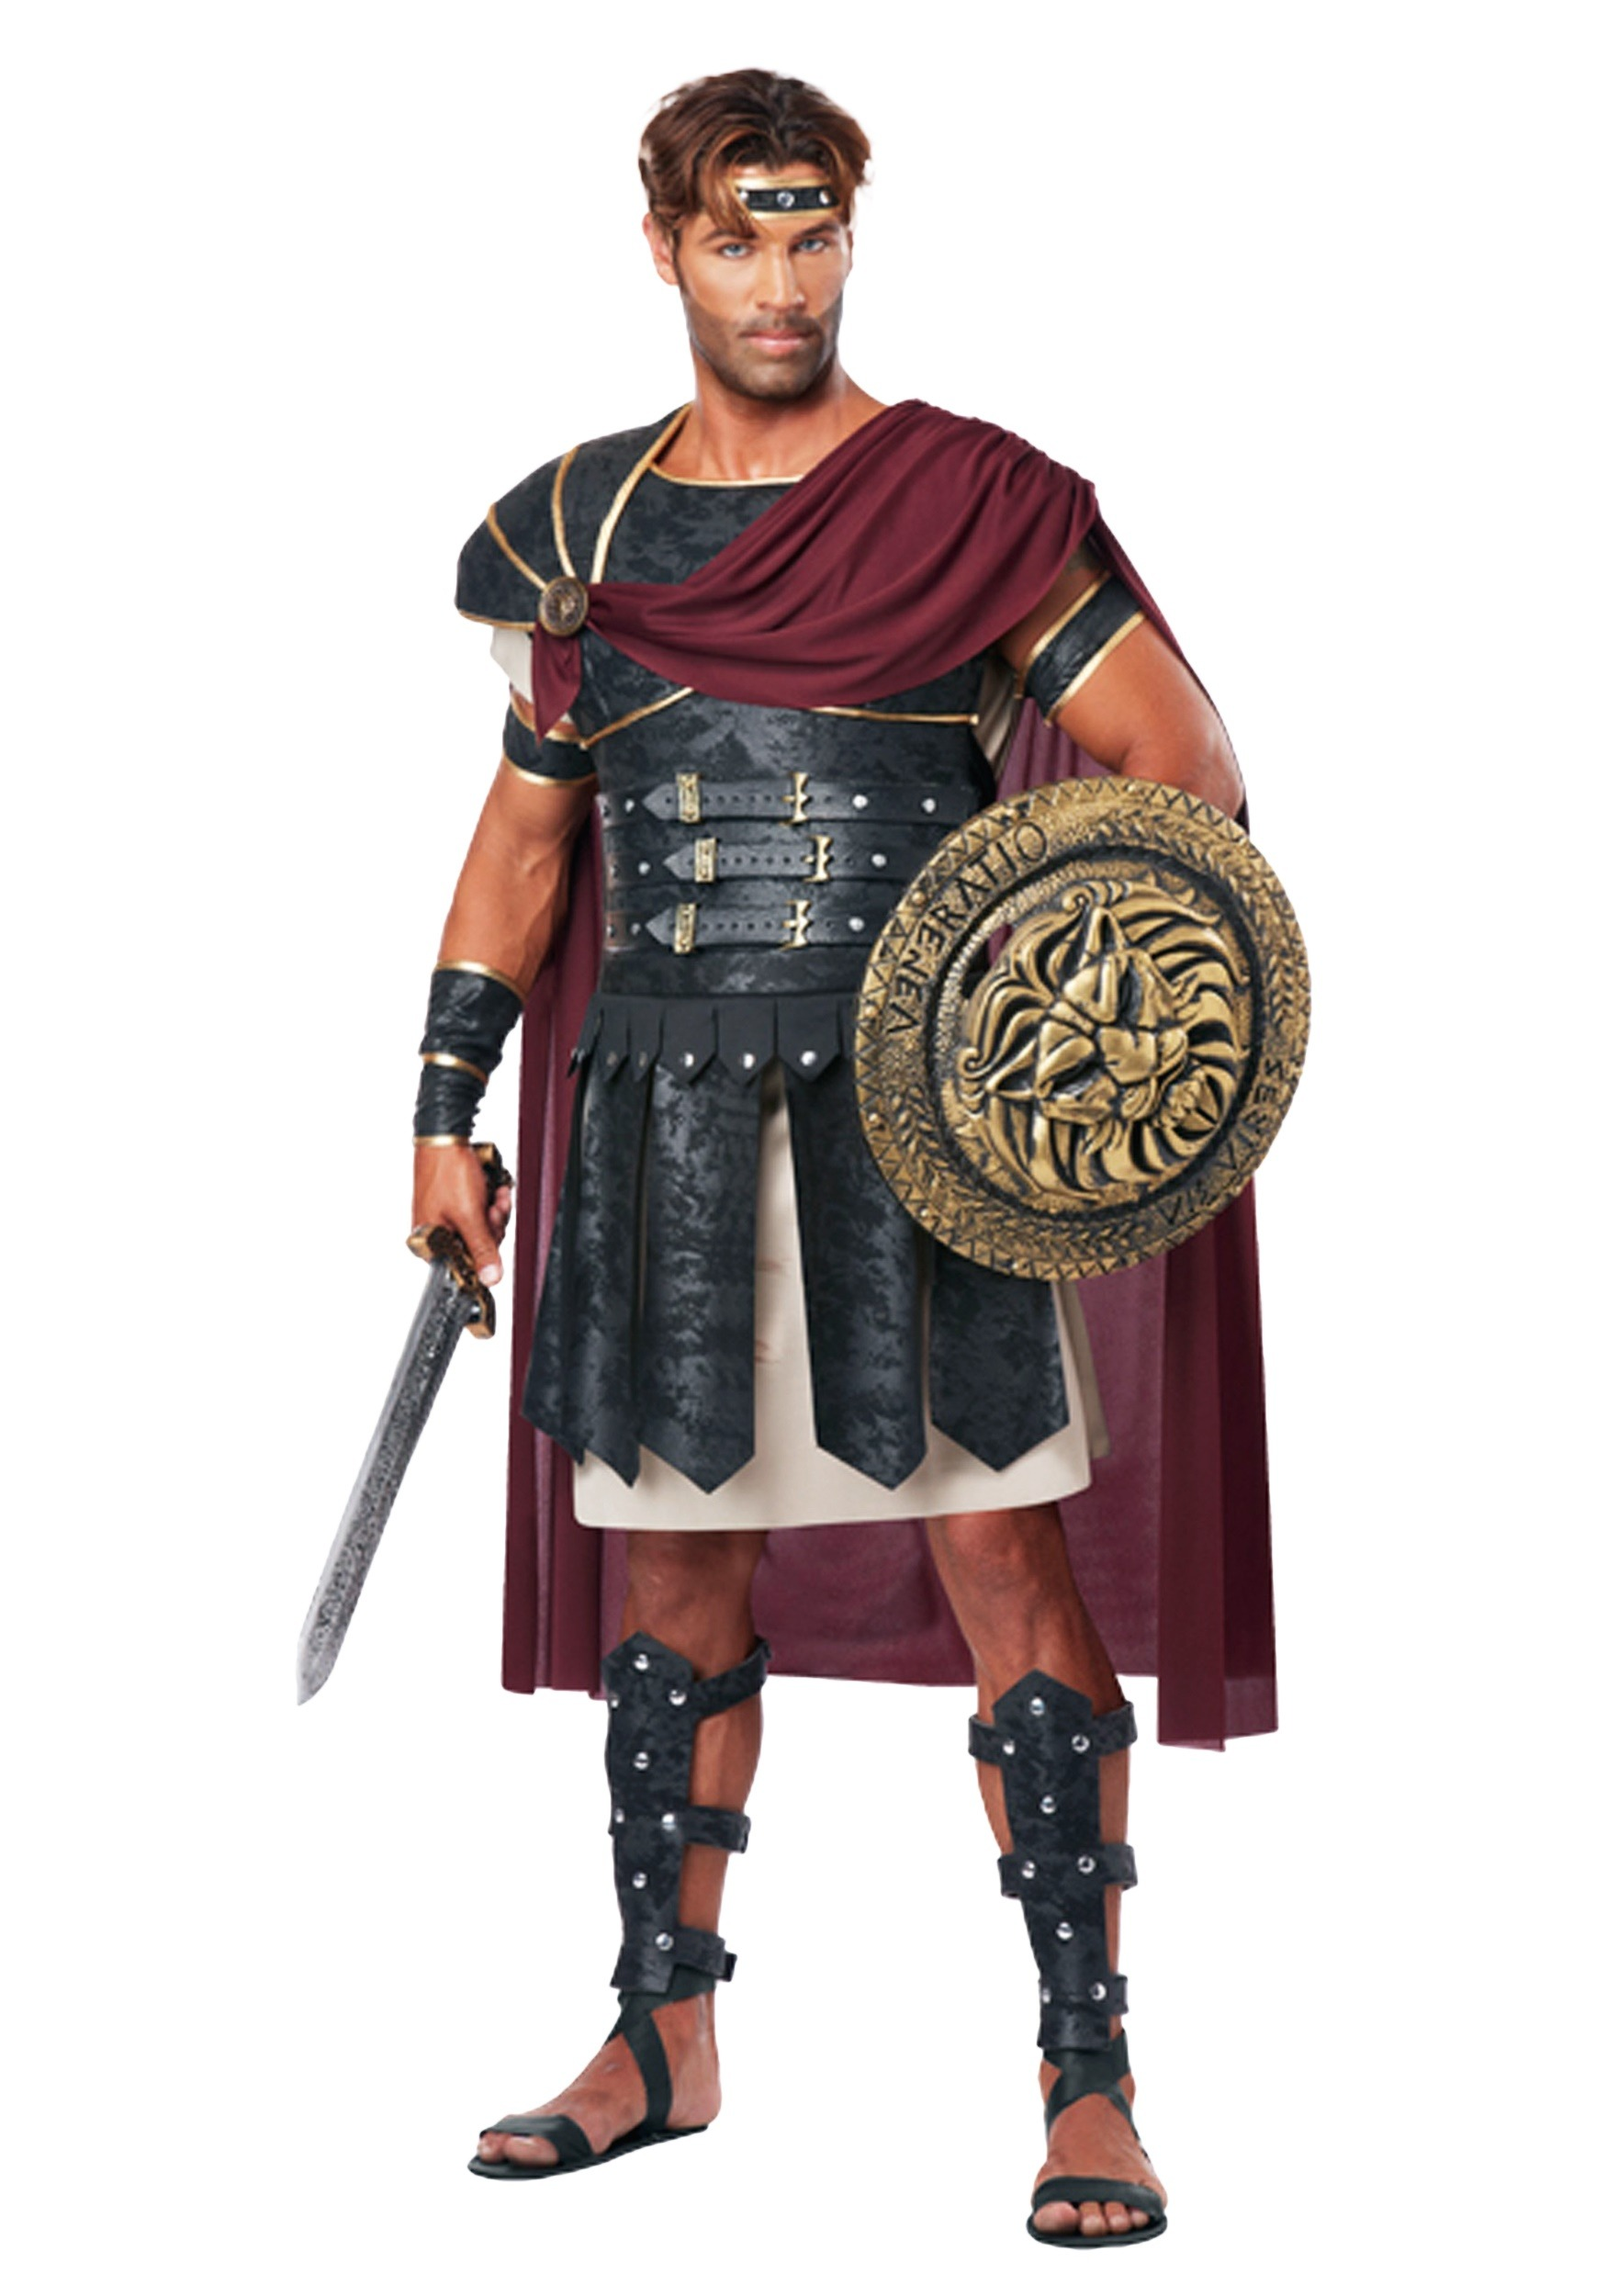 roman gladiator costume. Black Bedroom Furniture Sets. Home Design Ideas